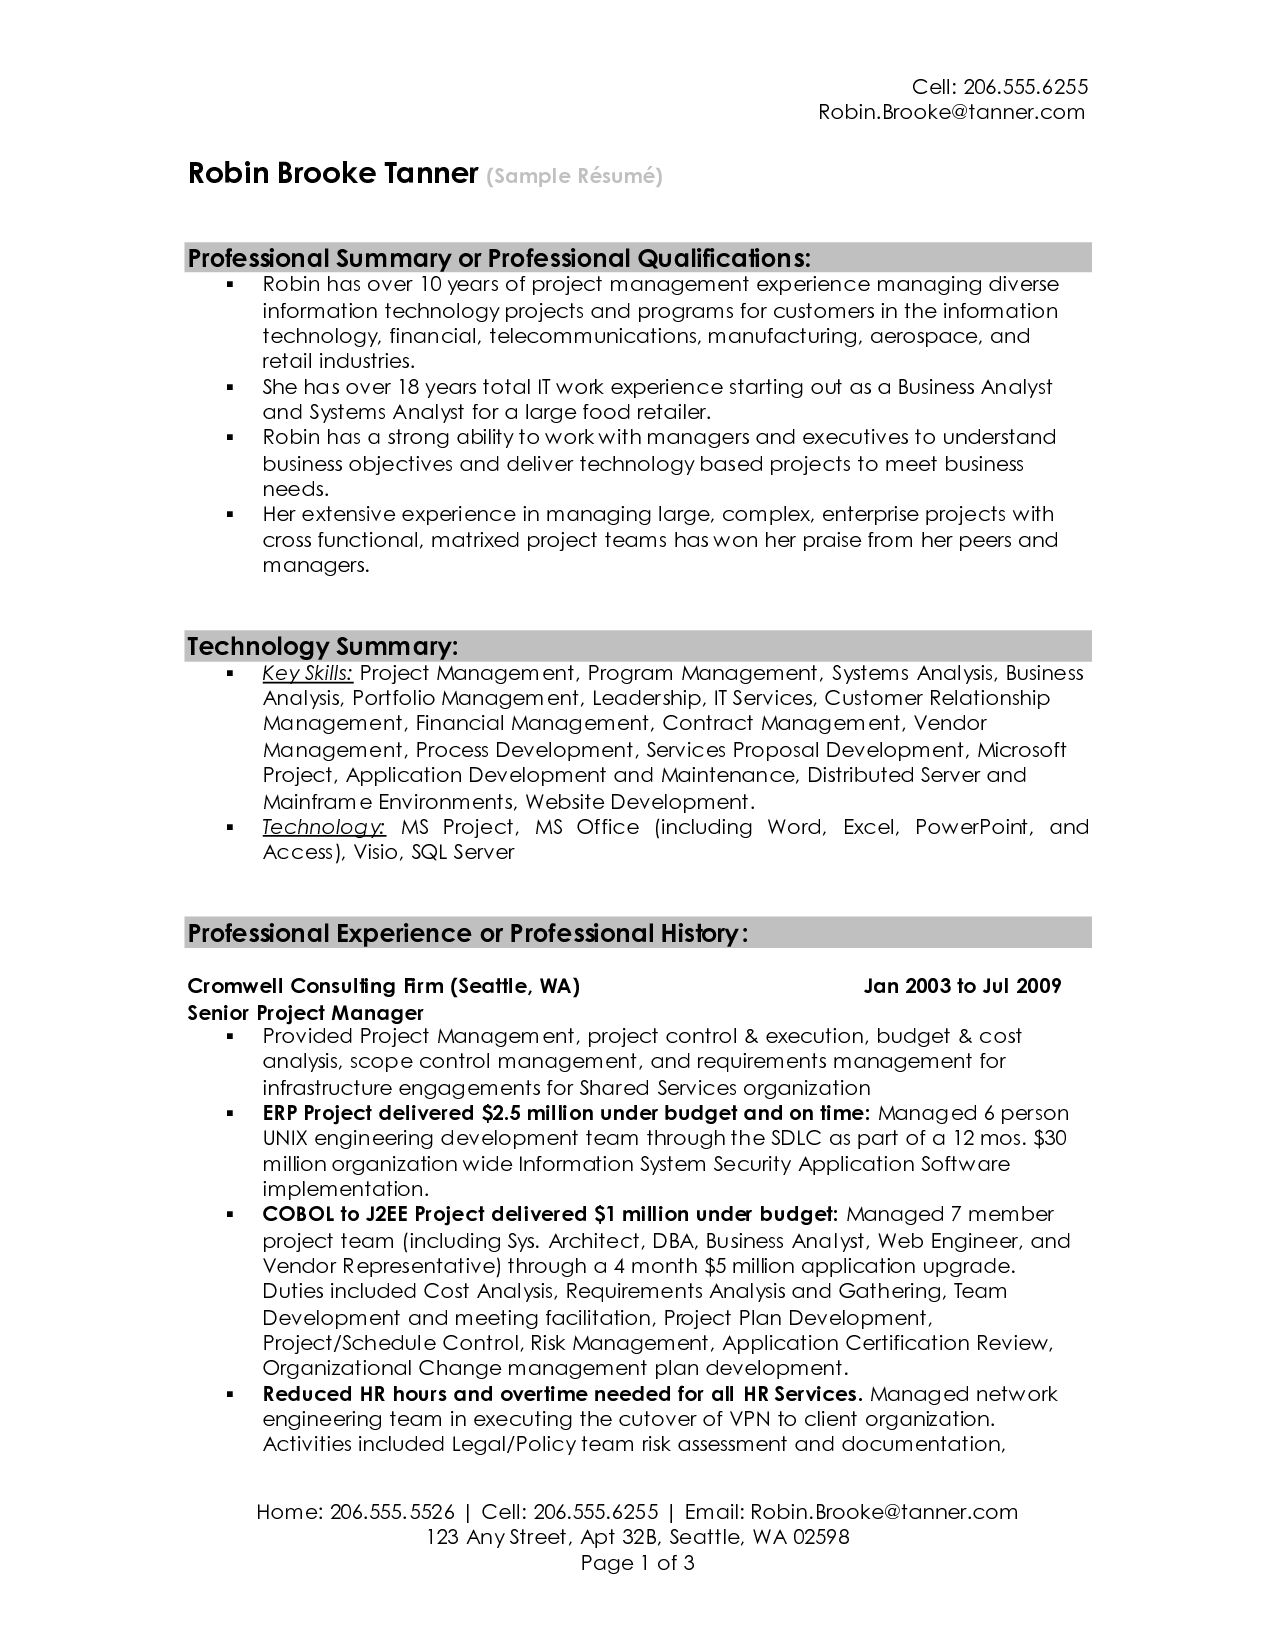 Professional Summary Resume Examples Professional Resume Summary Examples  77e7fb28f  What Should A Professional Resume Look Like